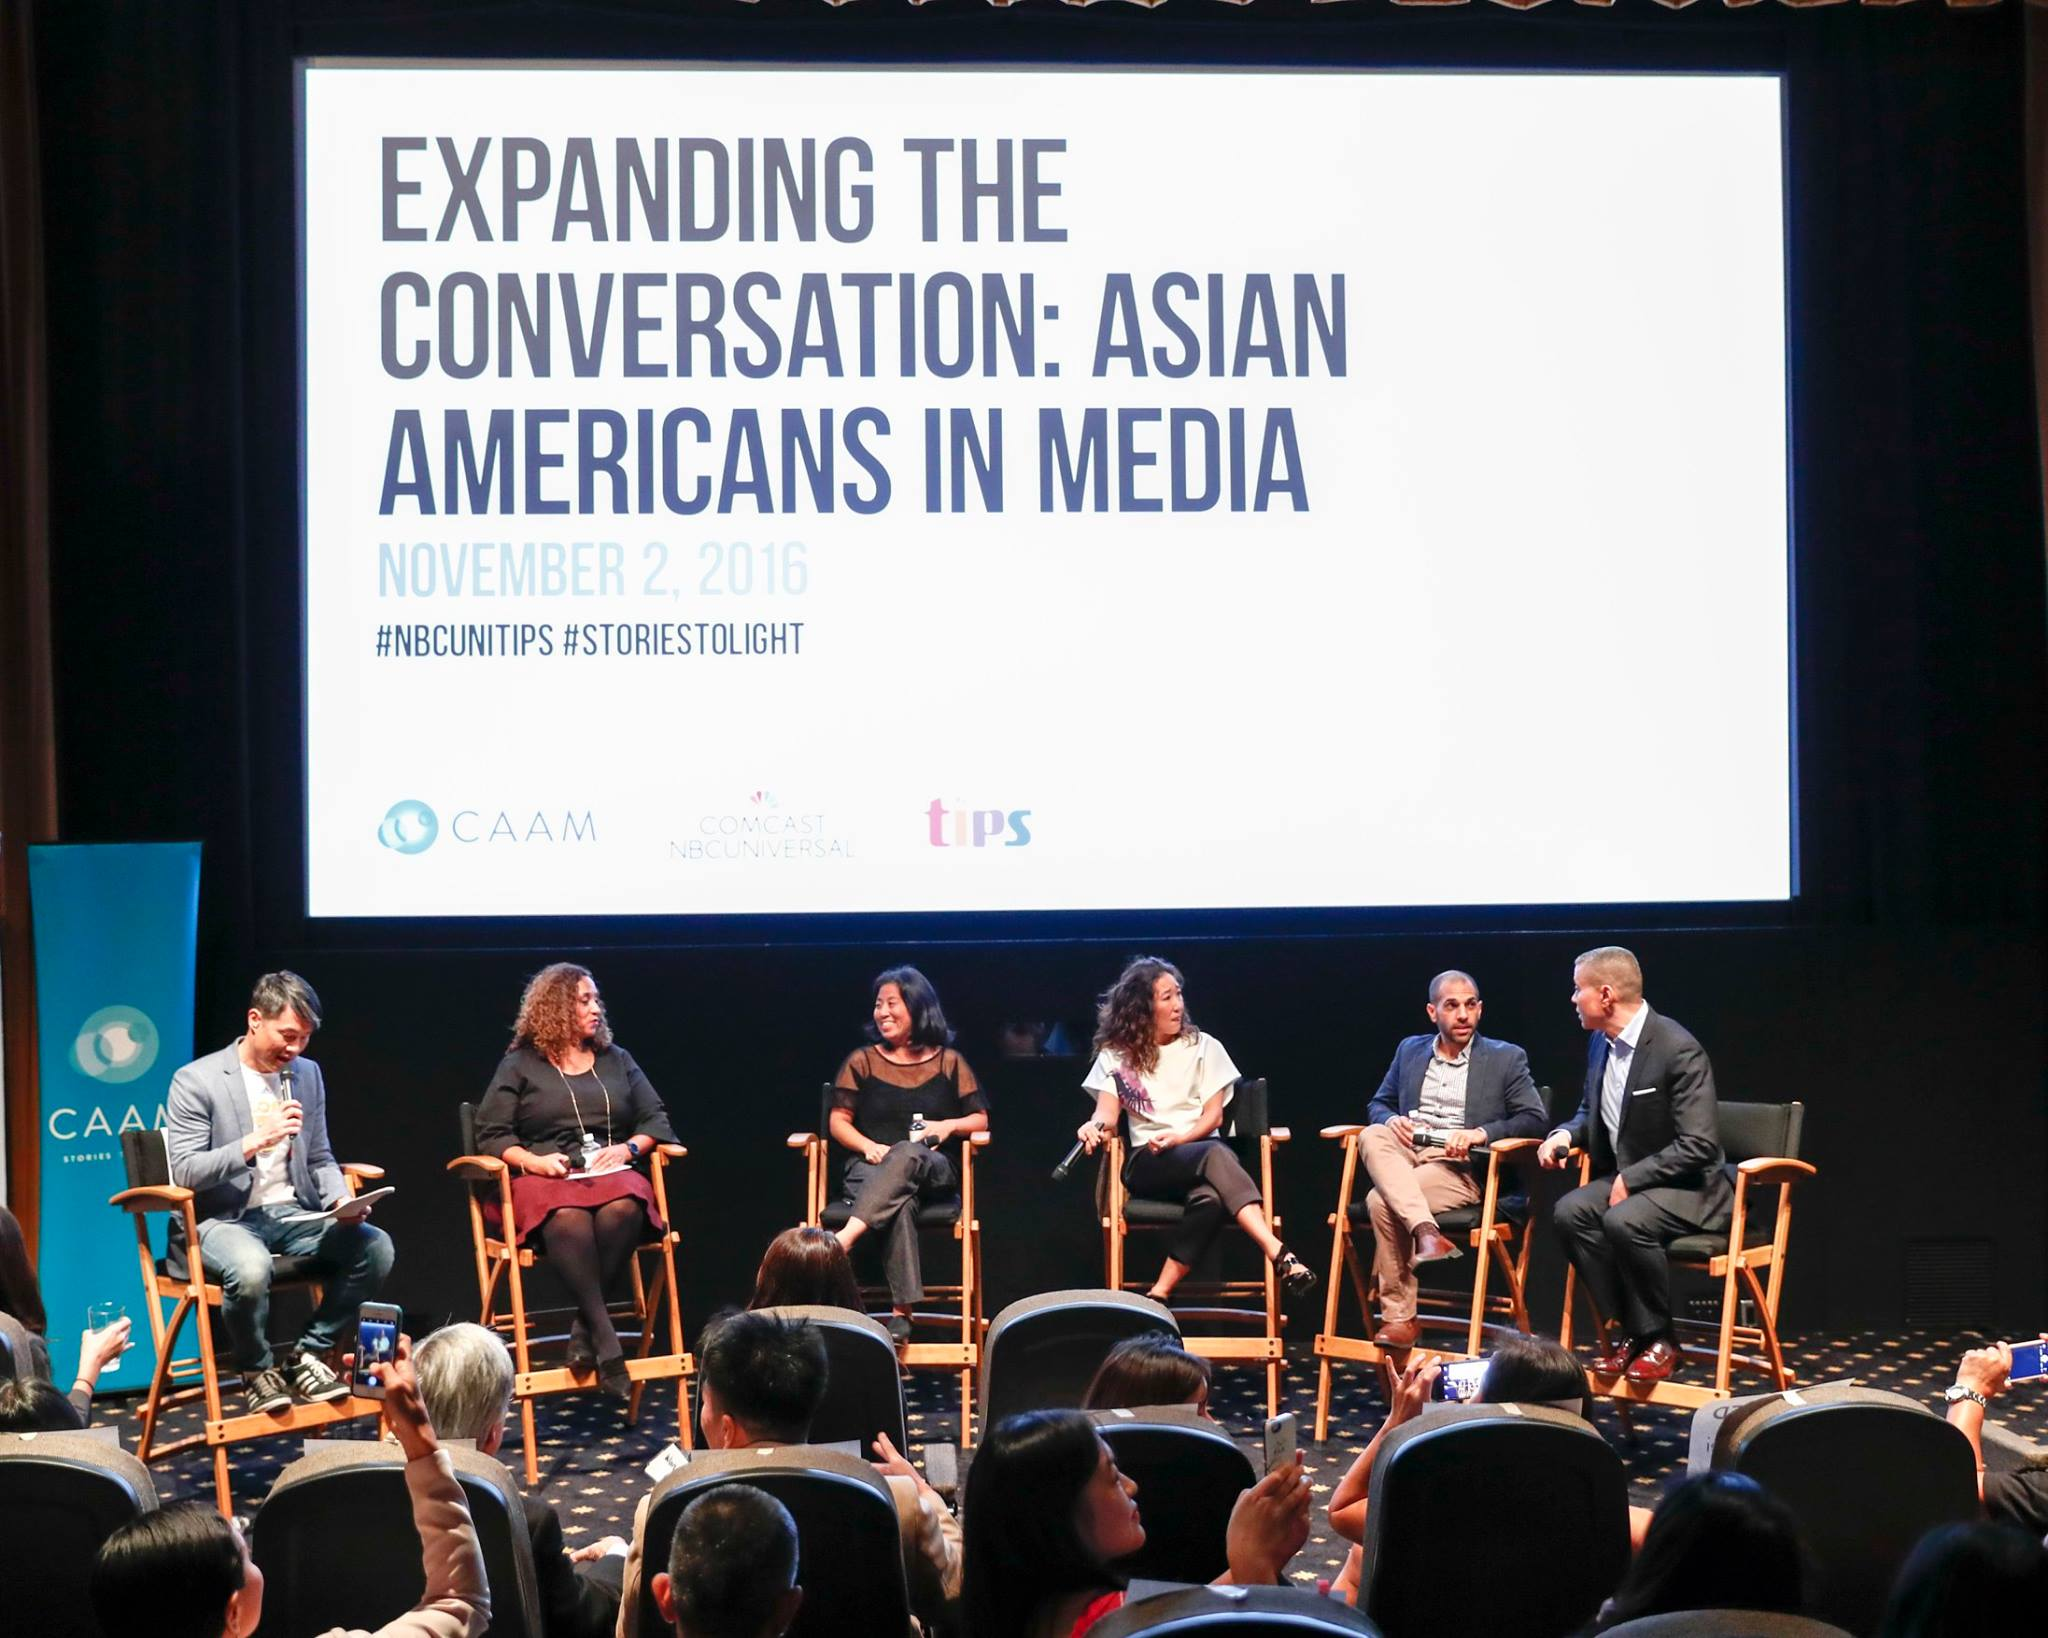 asian american media milestones in caam home alanhead2 expanding the conversation asian americans in media panel photo by rich polk getty